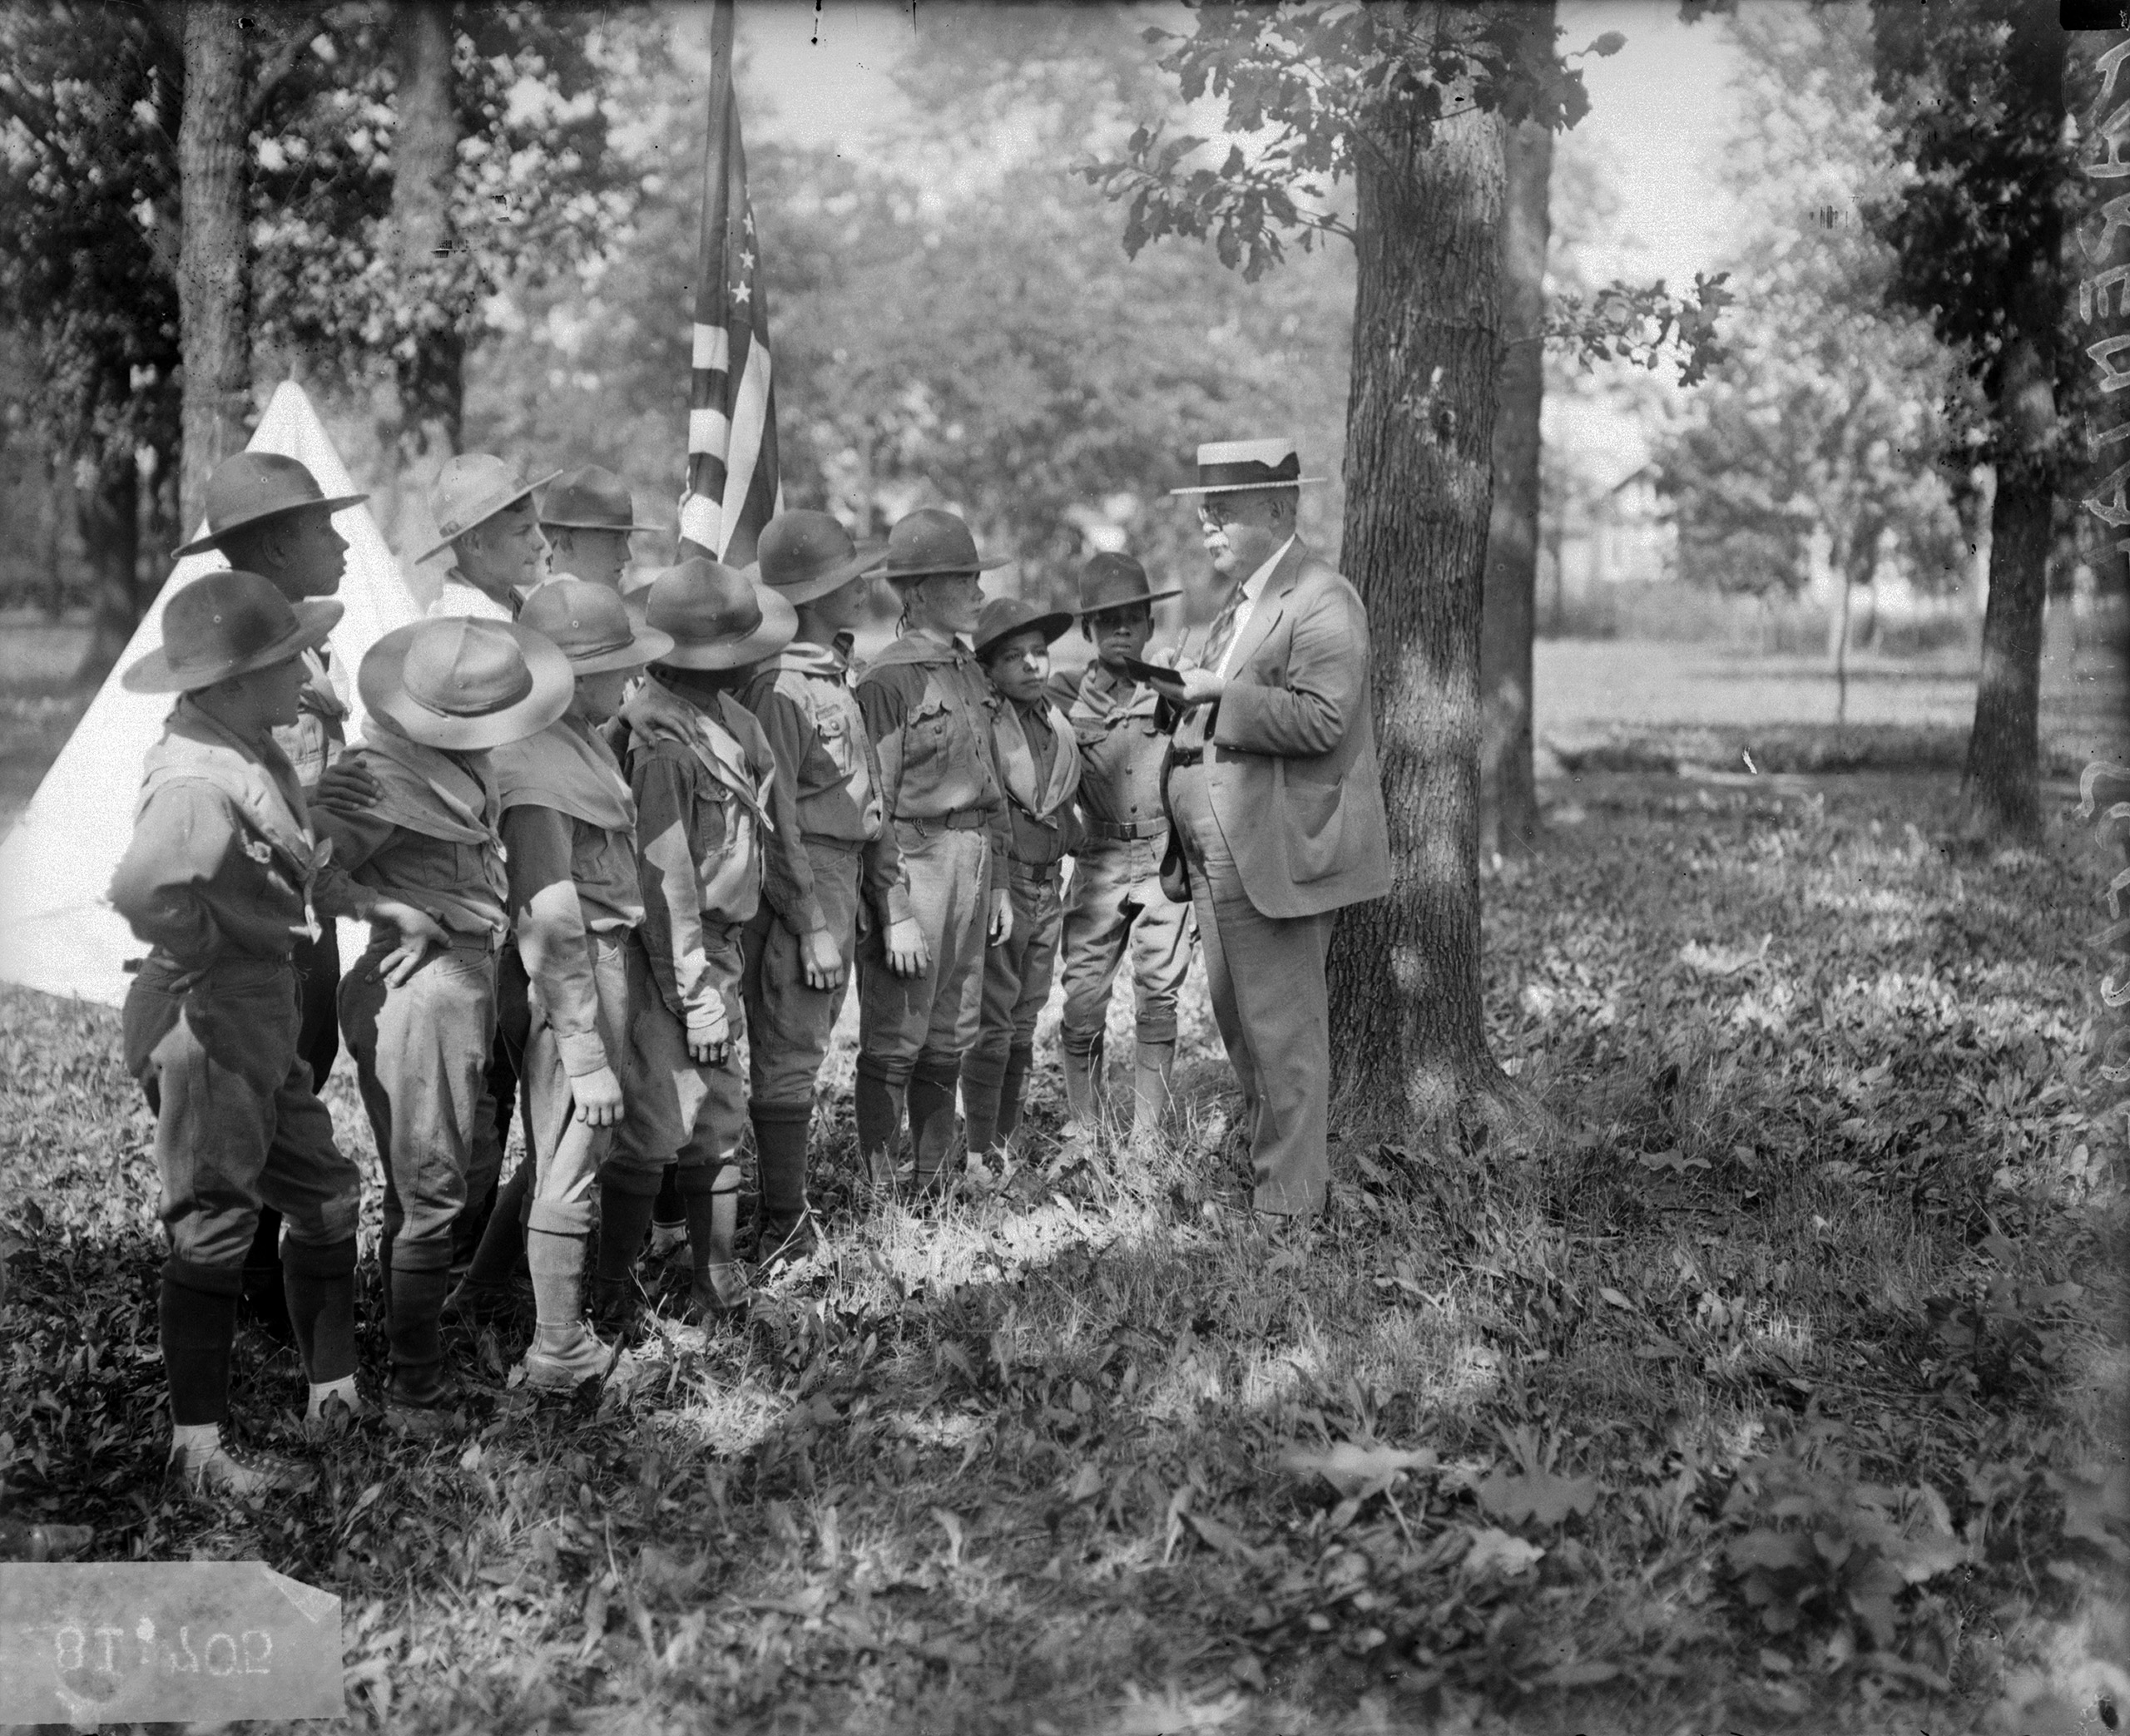 Boy Scouts at the Parental School for Boys in Chicago. 1926.